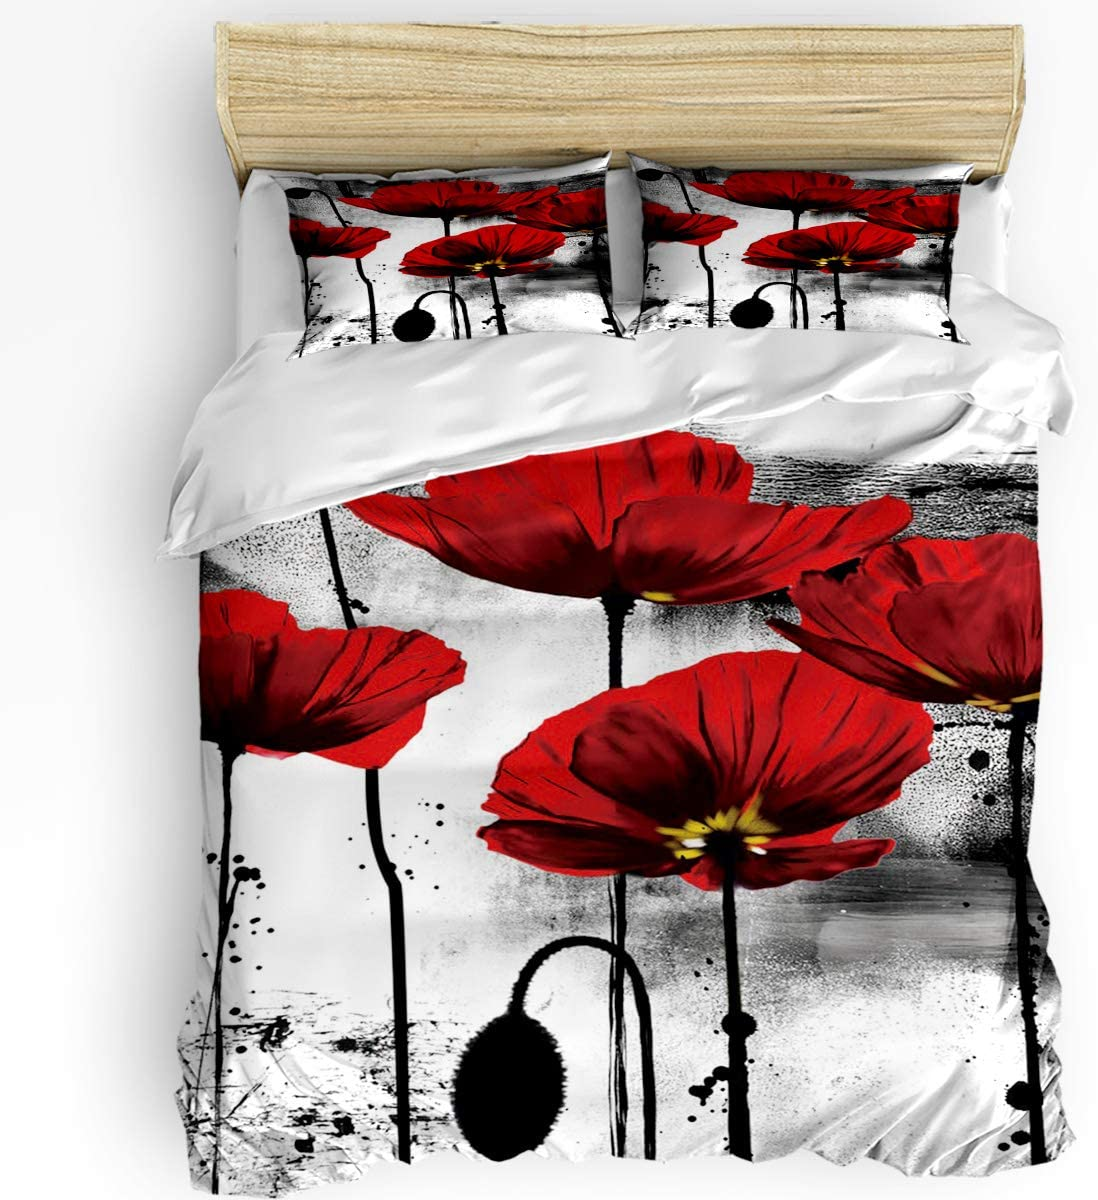 3 Pcs Duvet Cover Set King Size - Vintage Bedding Set, Red Poppy Flower Ink Painting Down Comforter Cover with Matching 2 Pillowcases for Kids Children Teens Boys Girls